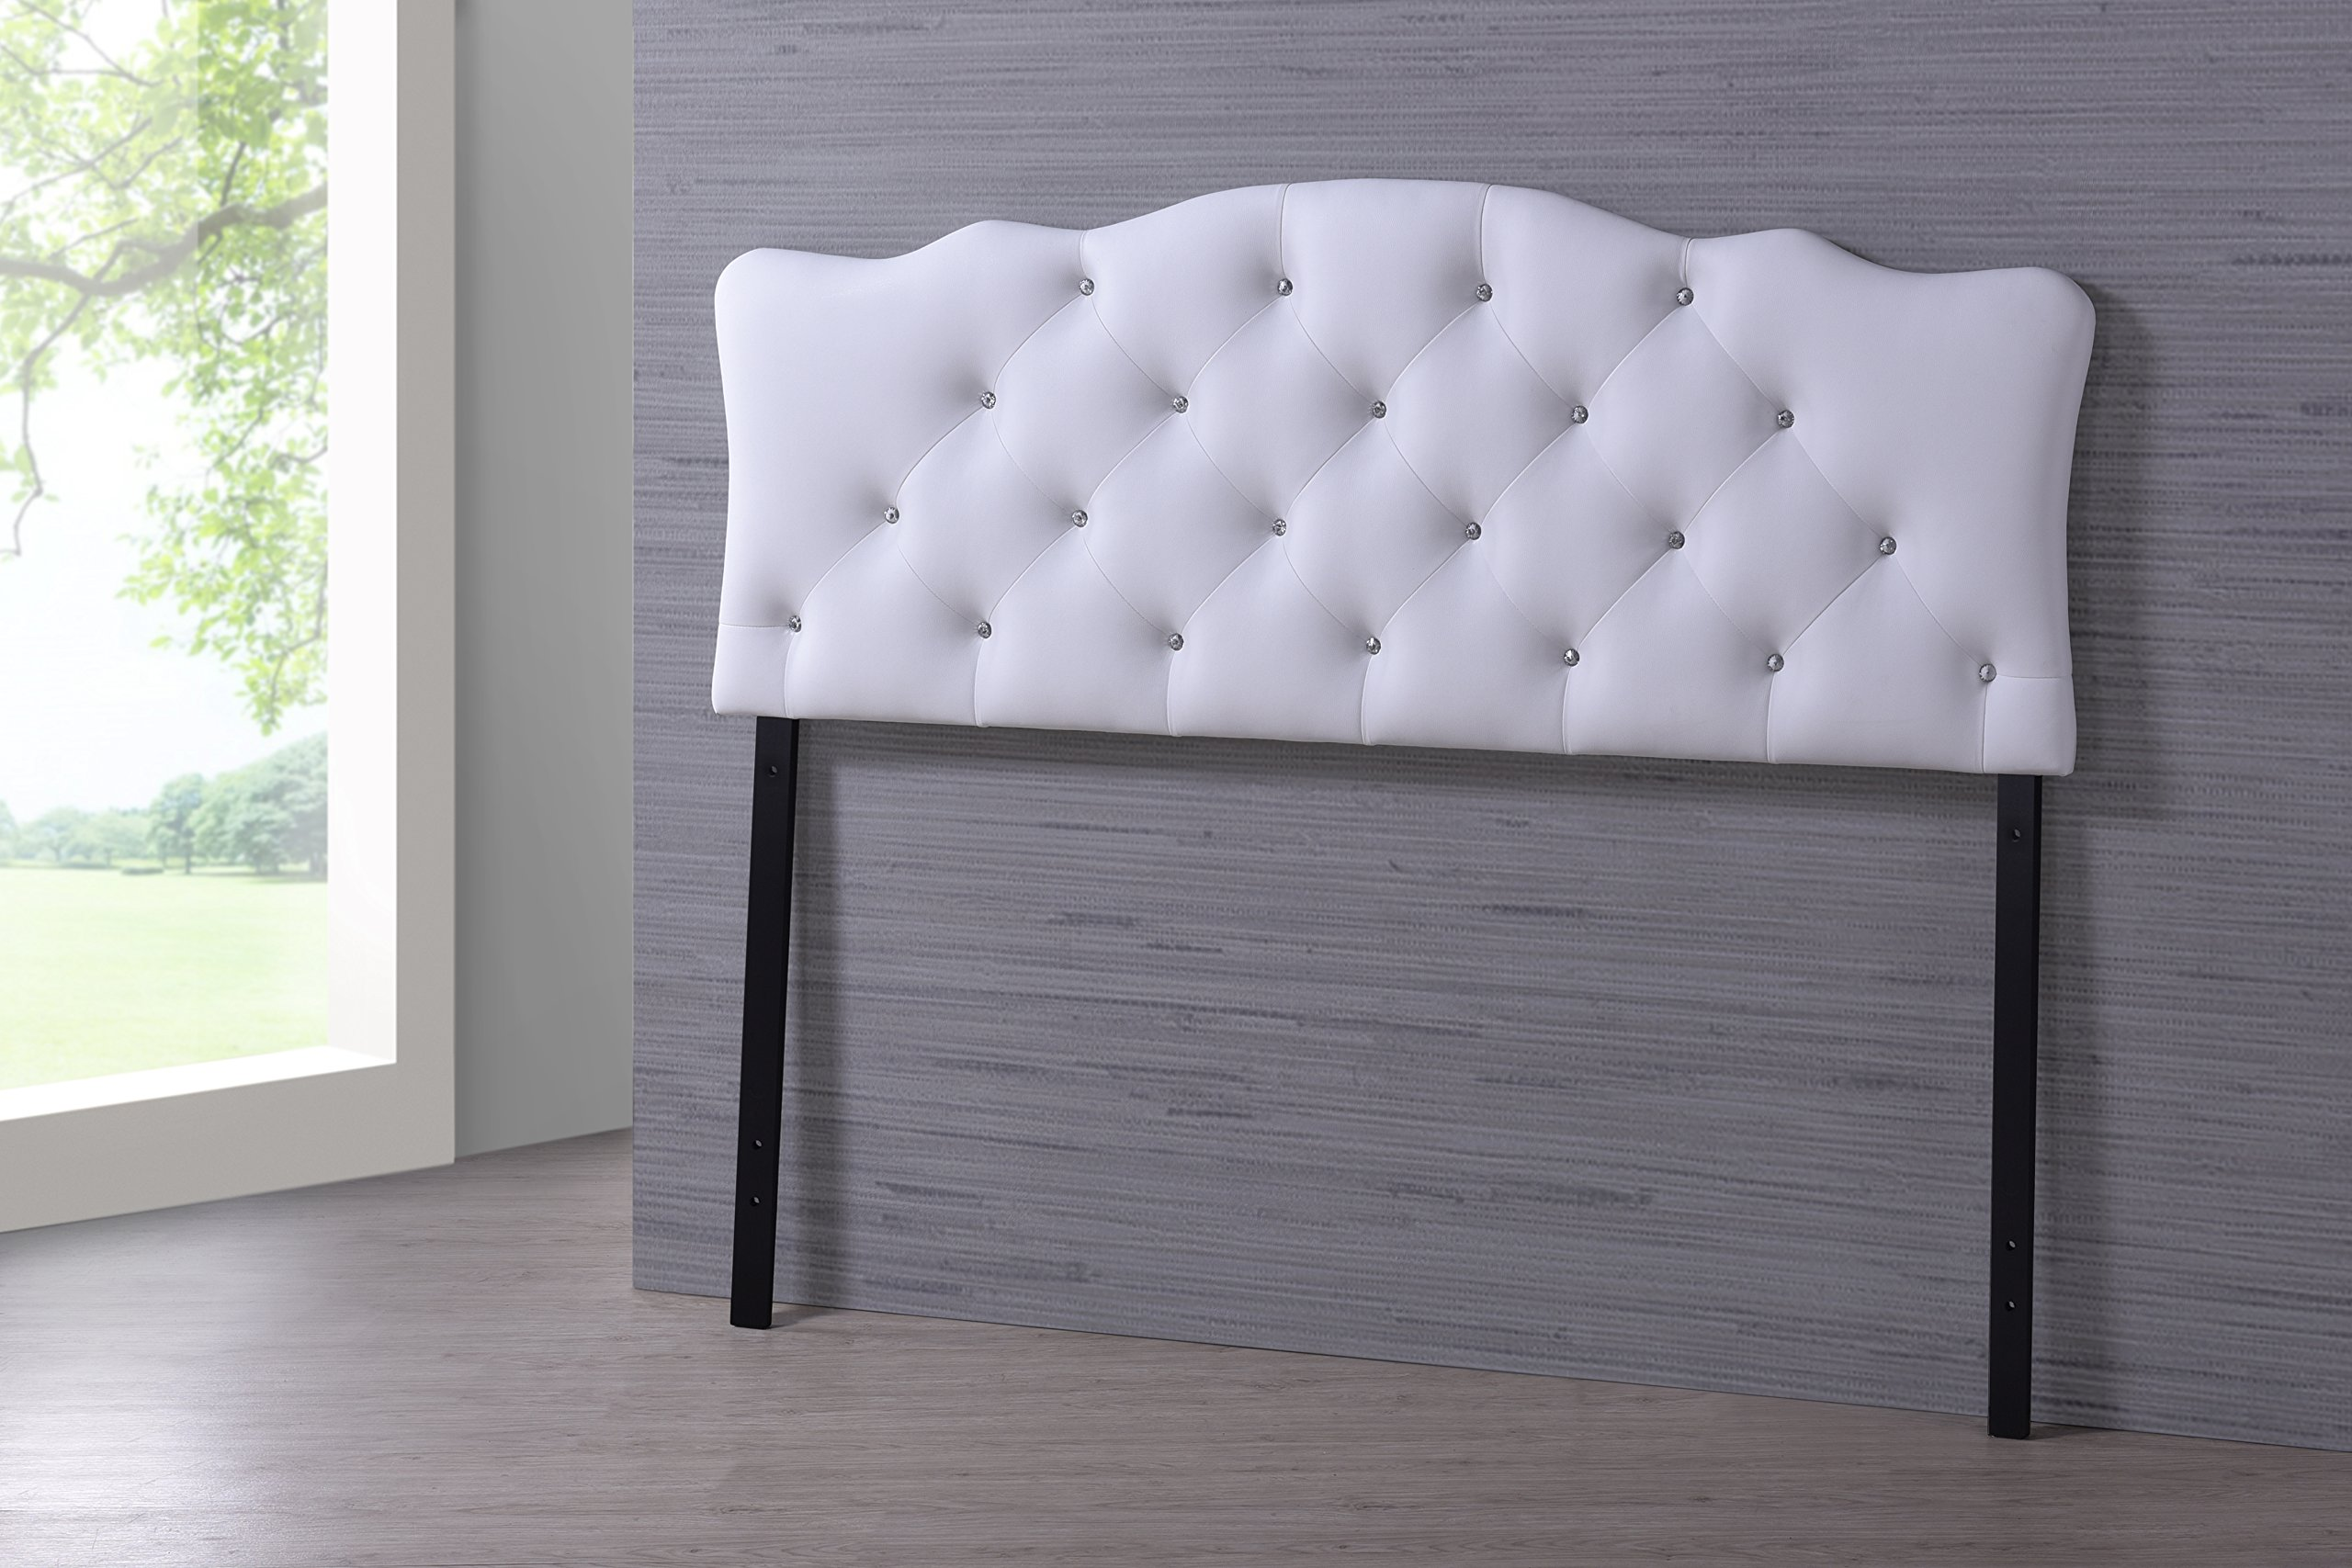 Baxton Studio Wholesale Interiors Rita Modern and Contemporary Faux Leather Upholstered Button-Tufted Scalloped Headboard, Full, White